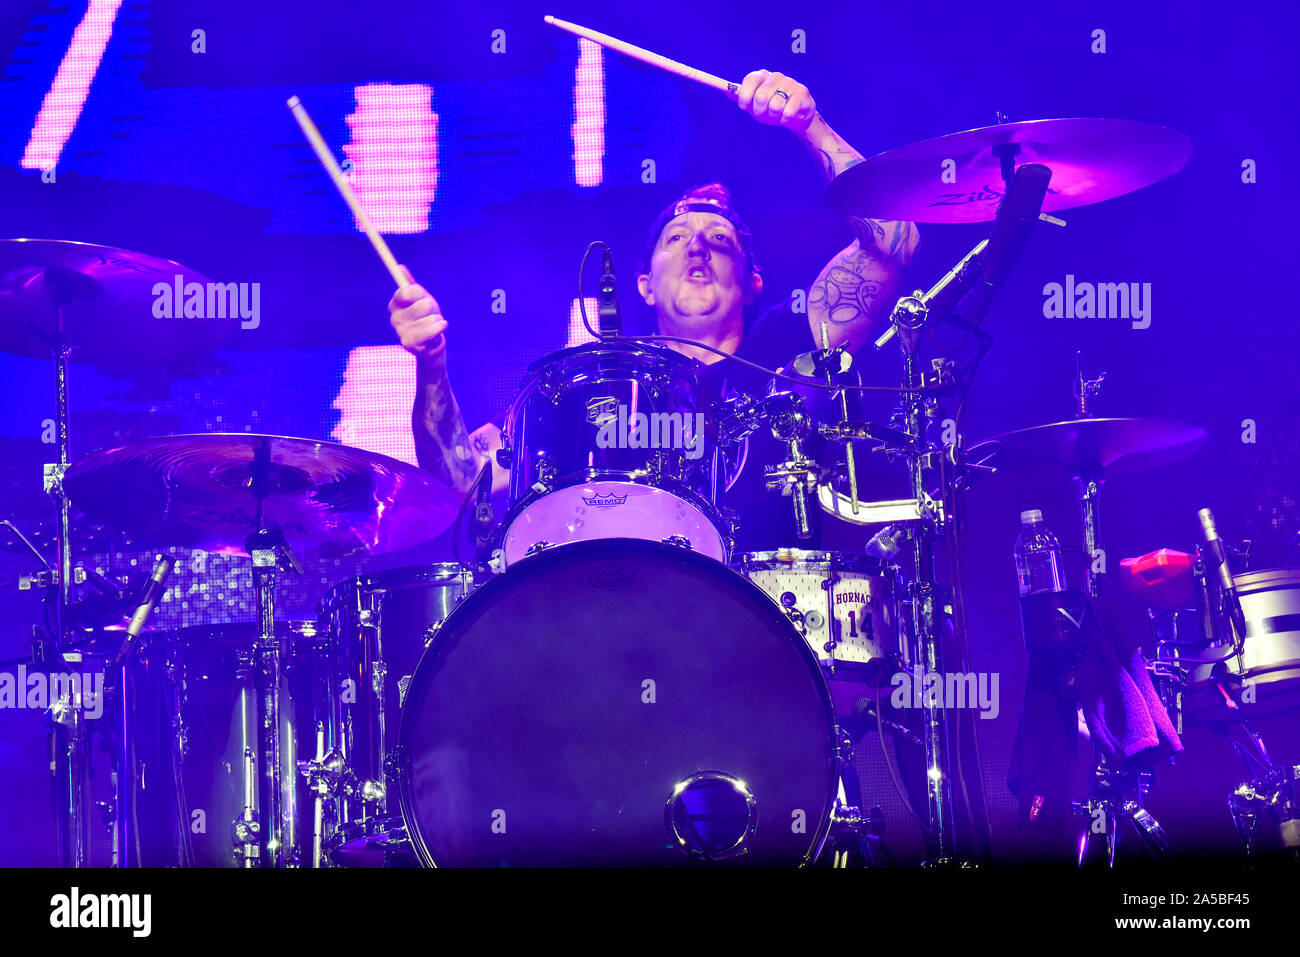 Las Vegas Nevada, October 18, 2019 – Drummer for the Band The Used performing at the third annual Las Rageous heavy metal music festival held at the Downtown Las Vegas Events Center. Photo Credit: Ken Howard Images Stock Photo